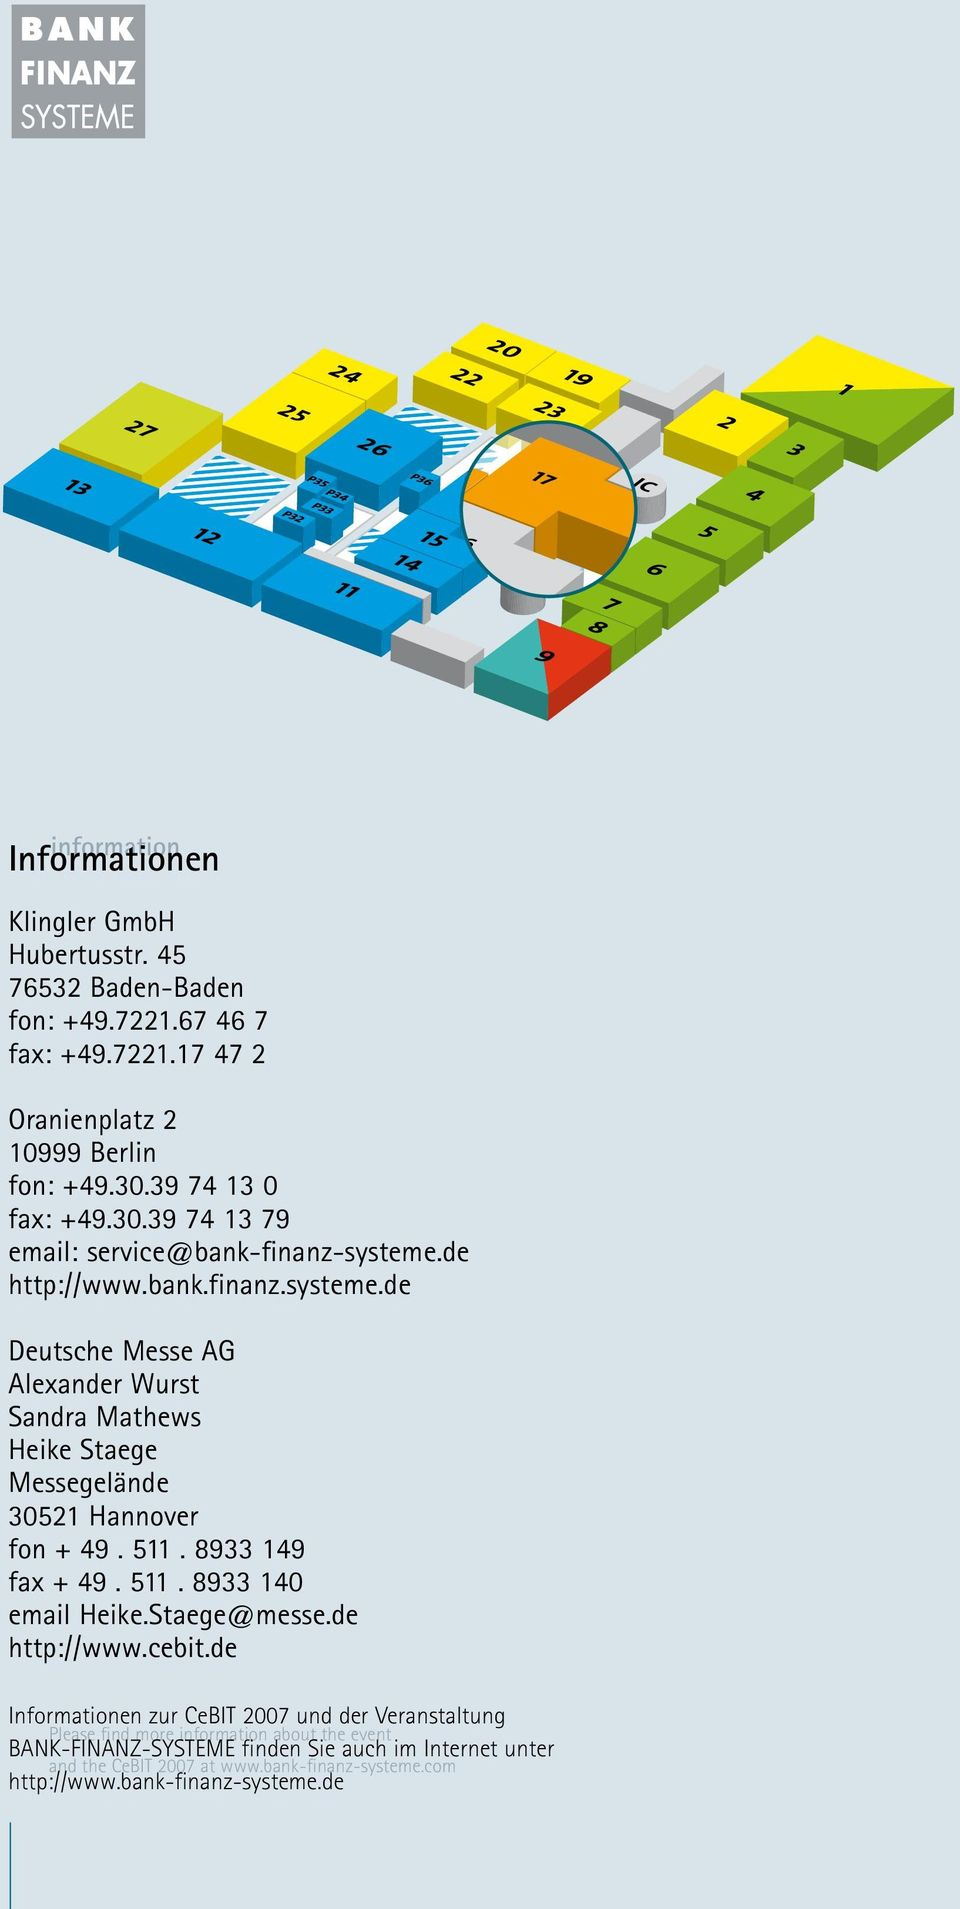 511. 8933 149 fax + 49. 511. 8933 140 email Heike.Staee@messe.de http://www.cebit.